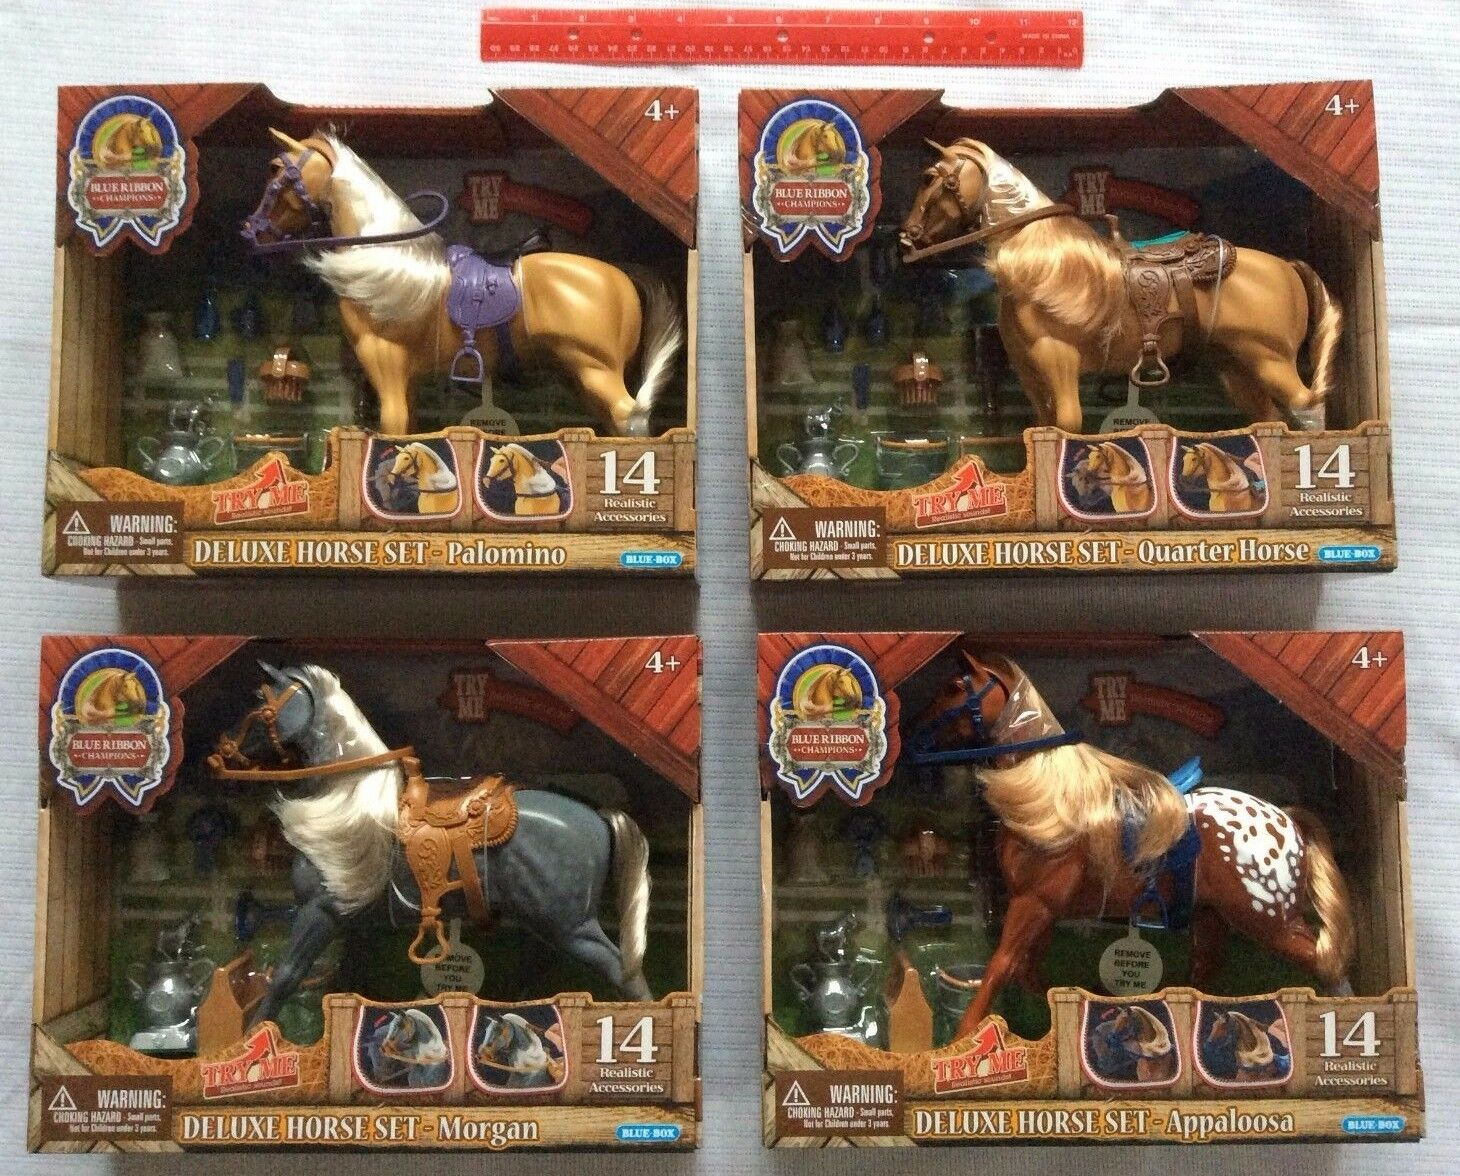 bluee Ribbon Champions Deluxe Horse Set 4 Lot  Palomino Morgan Appaloosa Quarter